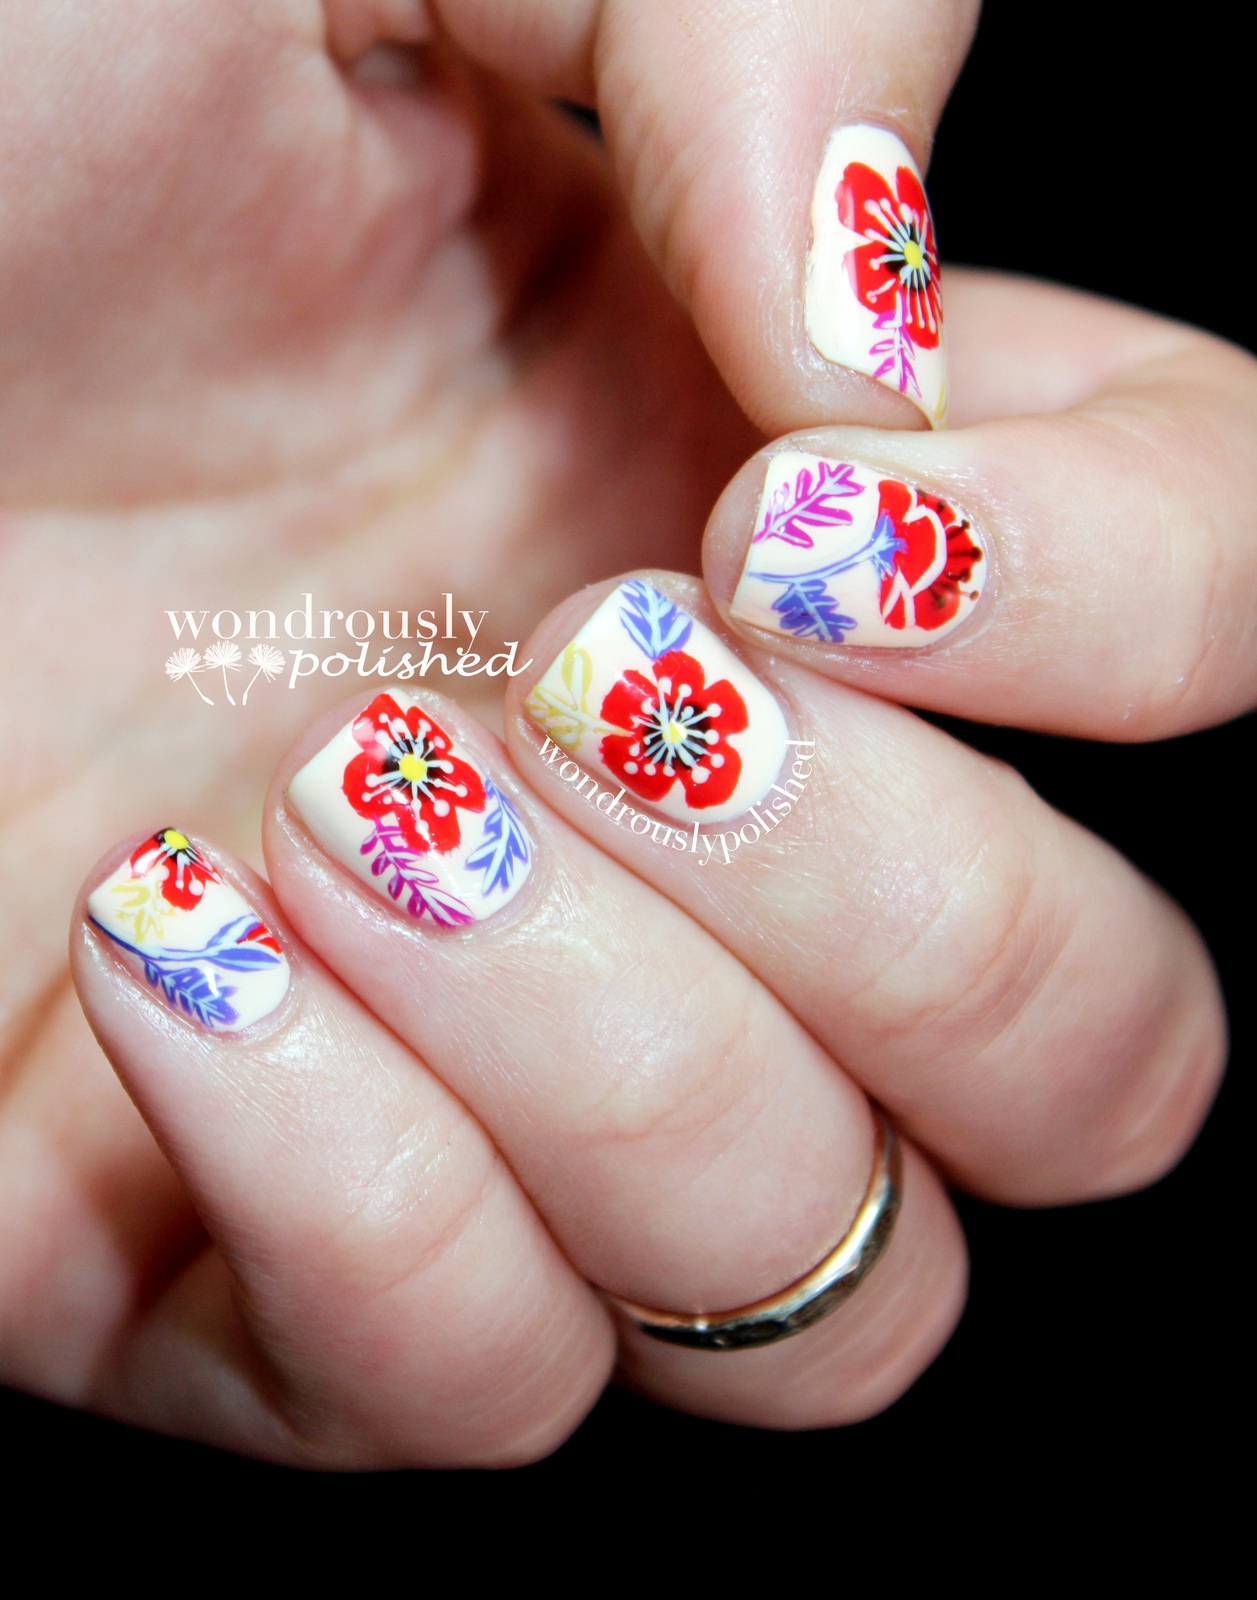 Floral Nail Art 183 How To Paint Patterned Nail Art 183 Nail Painting And Nail Painting On Cut Out